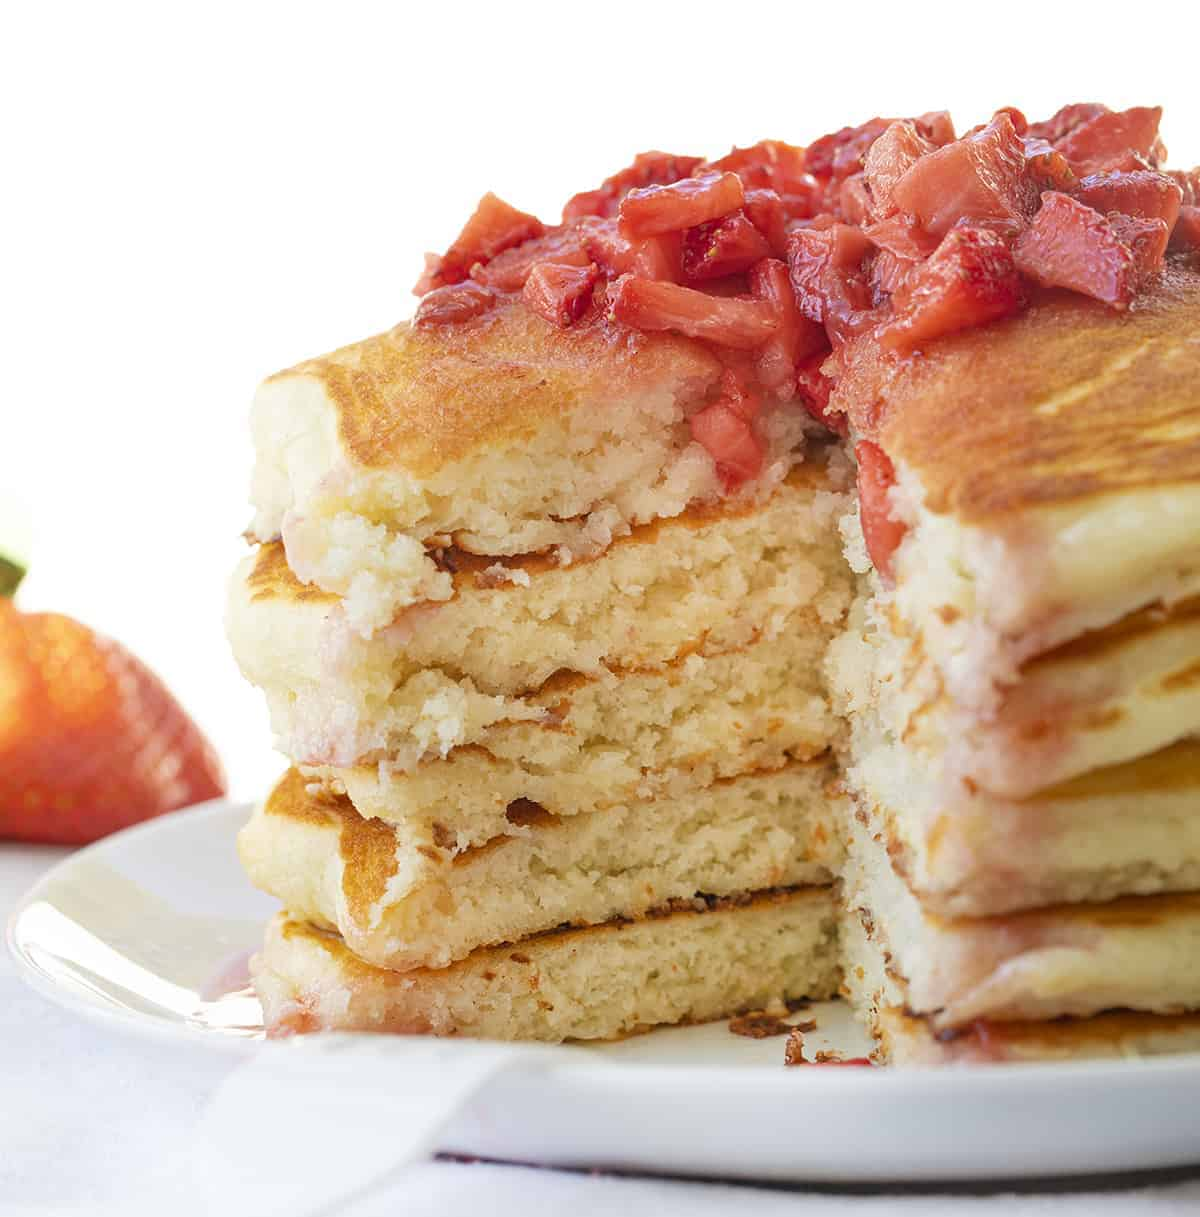 Strawberry Cheesecake Pancakes Cut Into Showing Inside